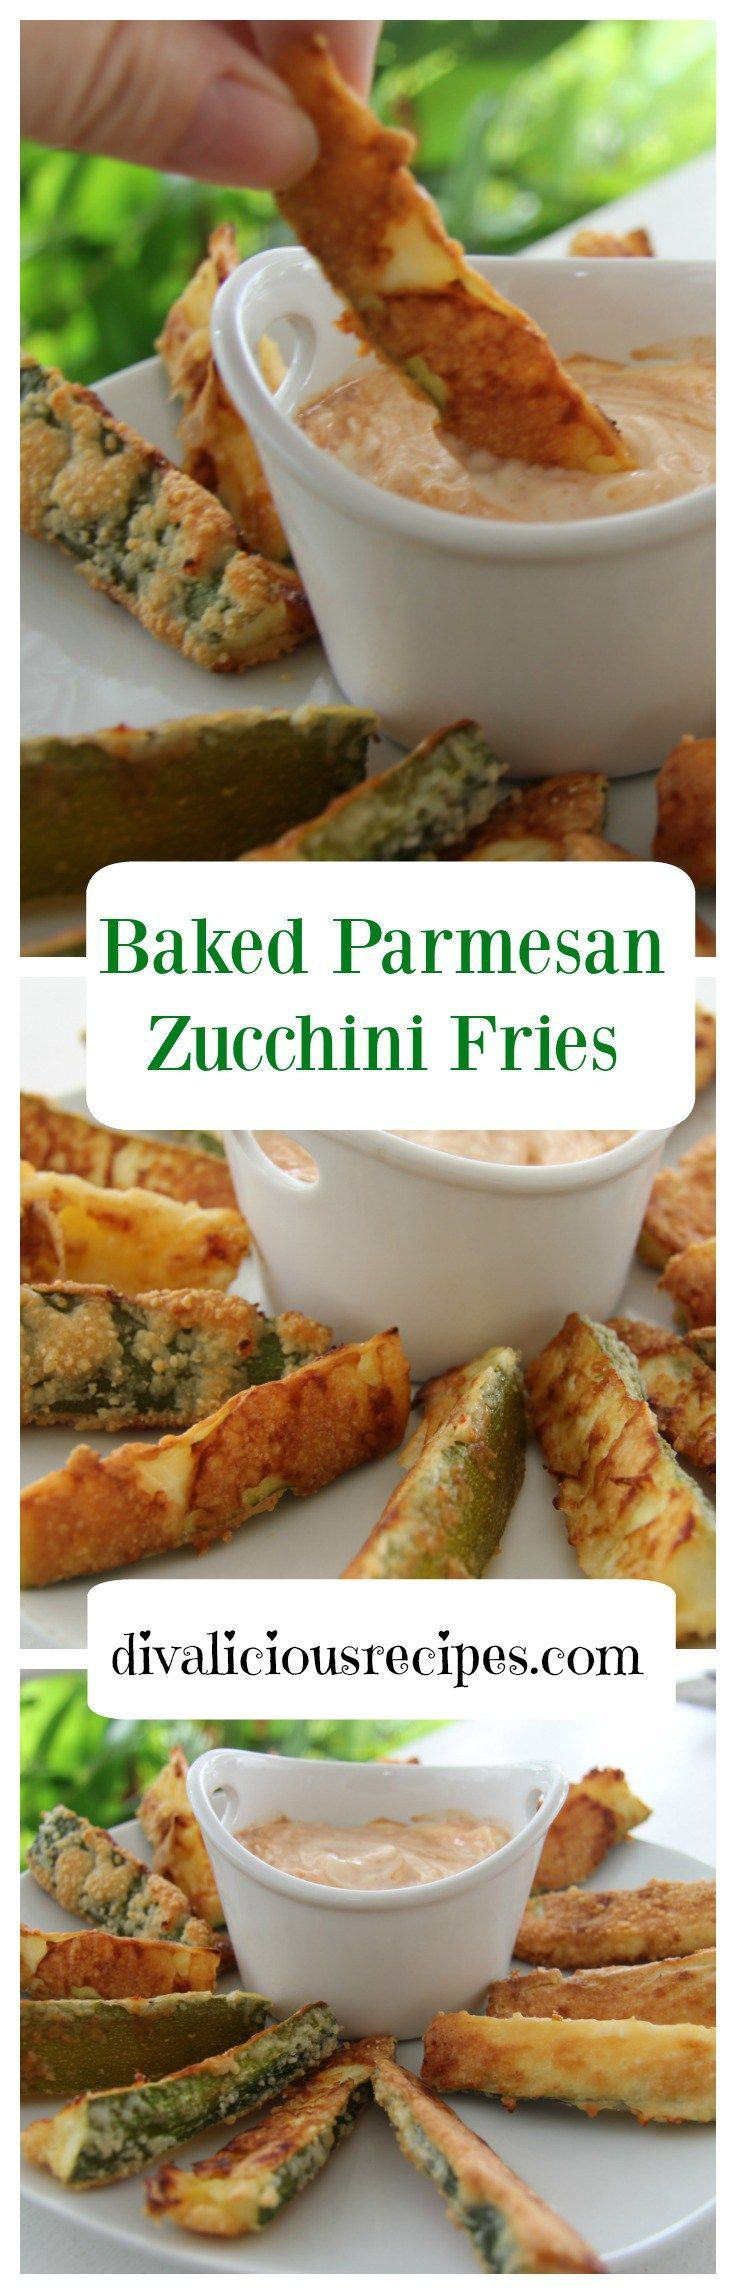 A low carb and gluten free snack or appetiser made with Parmesan and zucchini. See the recipe on http://www.divaliciousrecipes.com